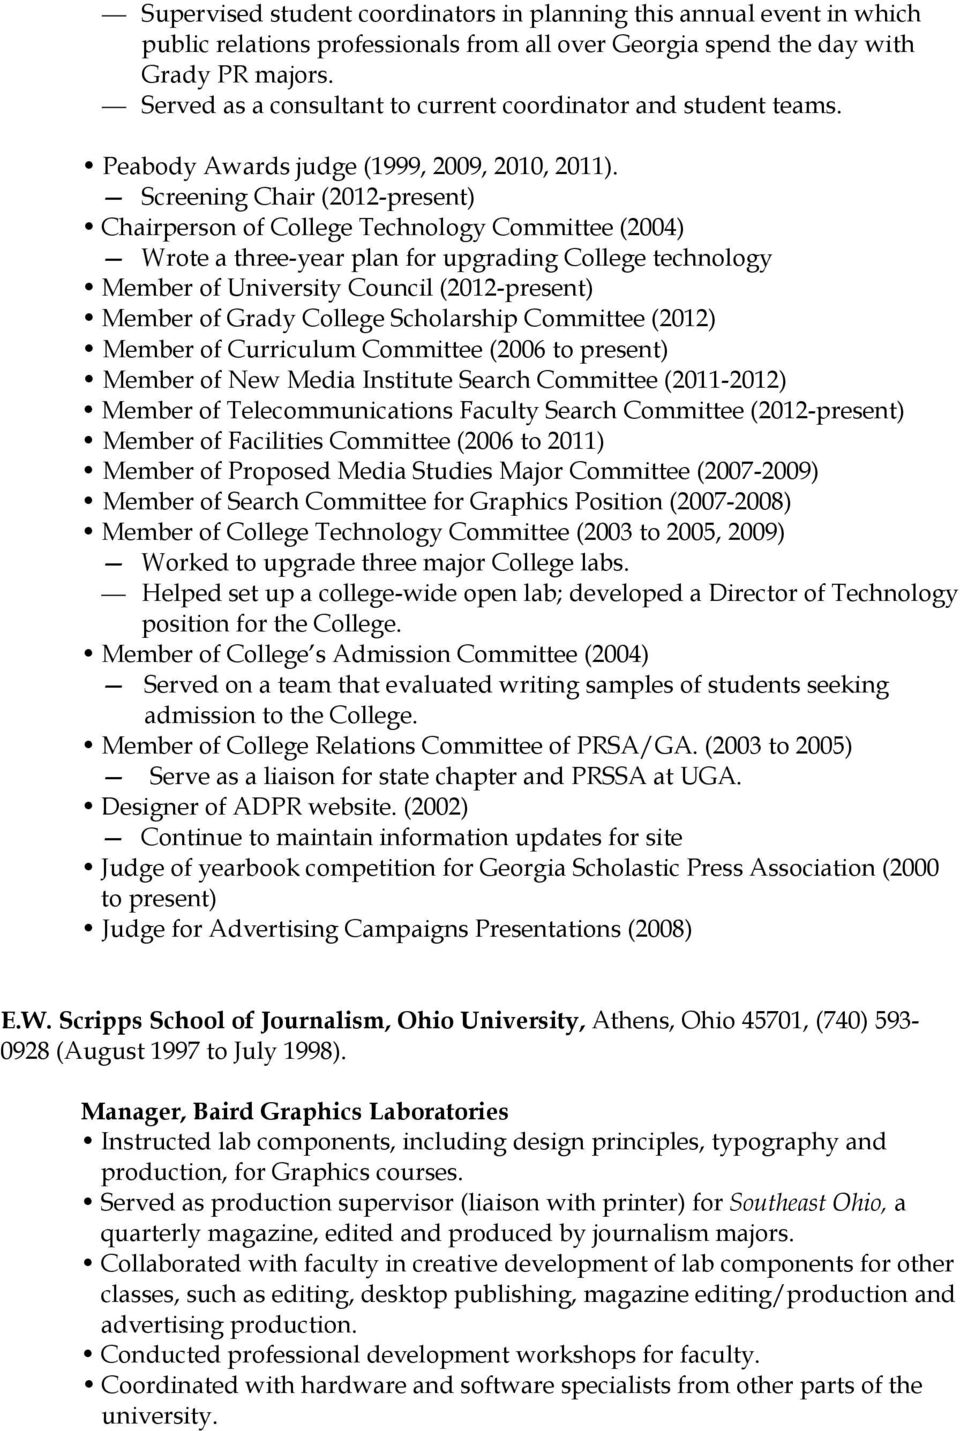 Screening Chair (2012-present) Chairperson of College Technology Committee (2004) Wrote a three-year plan for upgrading College technology Member of University Council (2012-present) Member of Grady